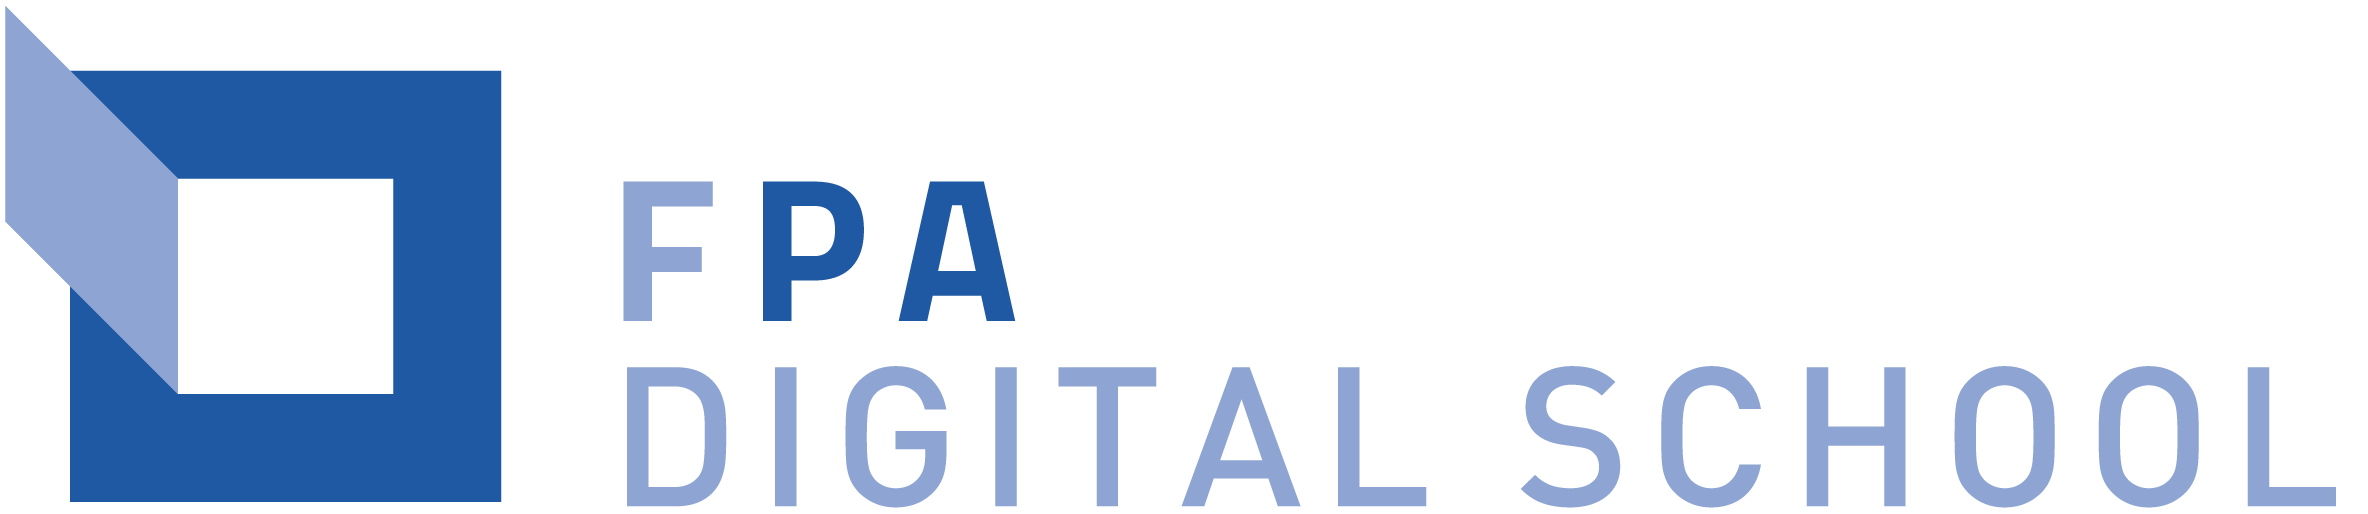 FPA Digital School